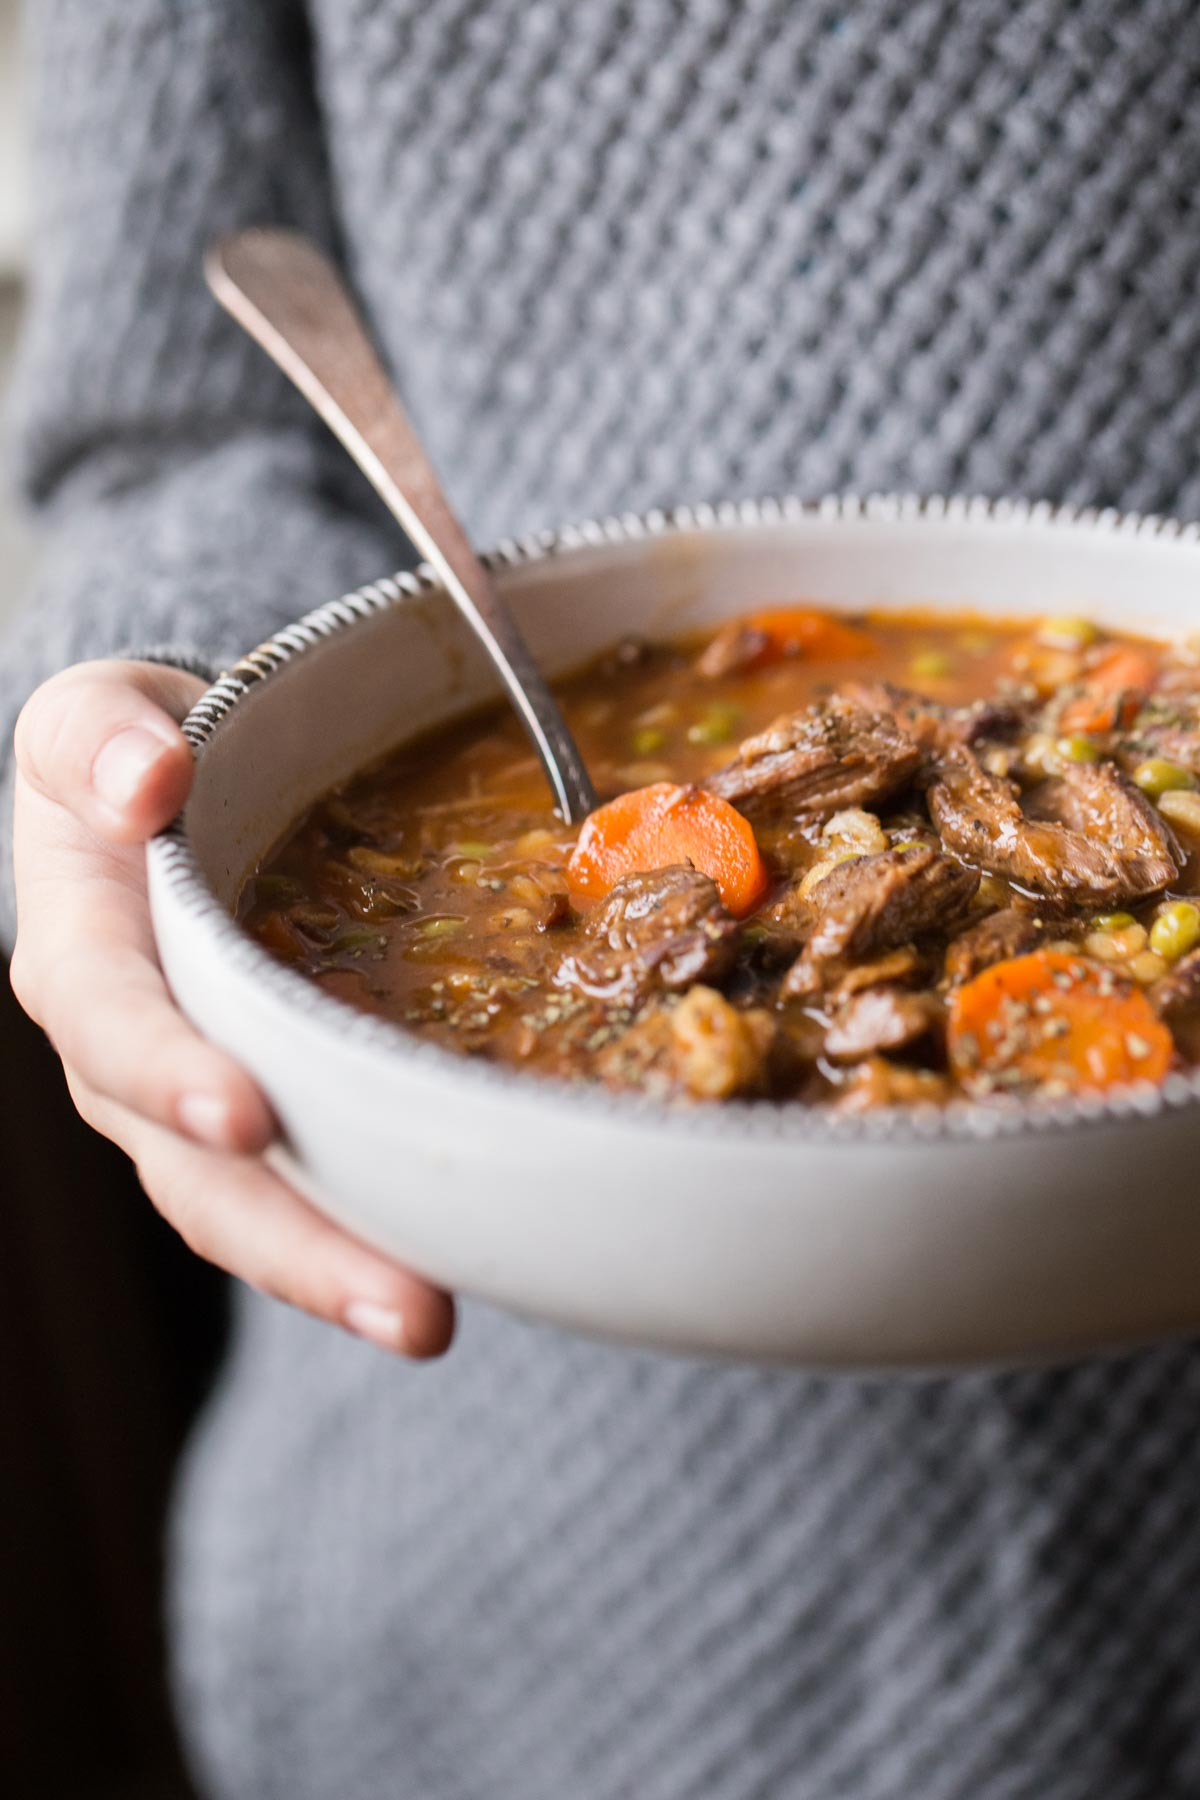 Beef and Barley Vegetable Soup in a bowl with a spoon.